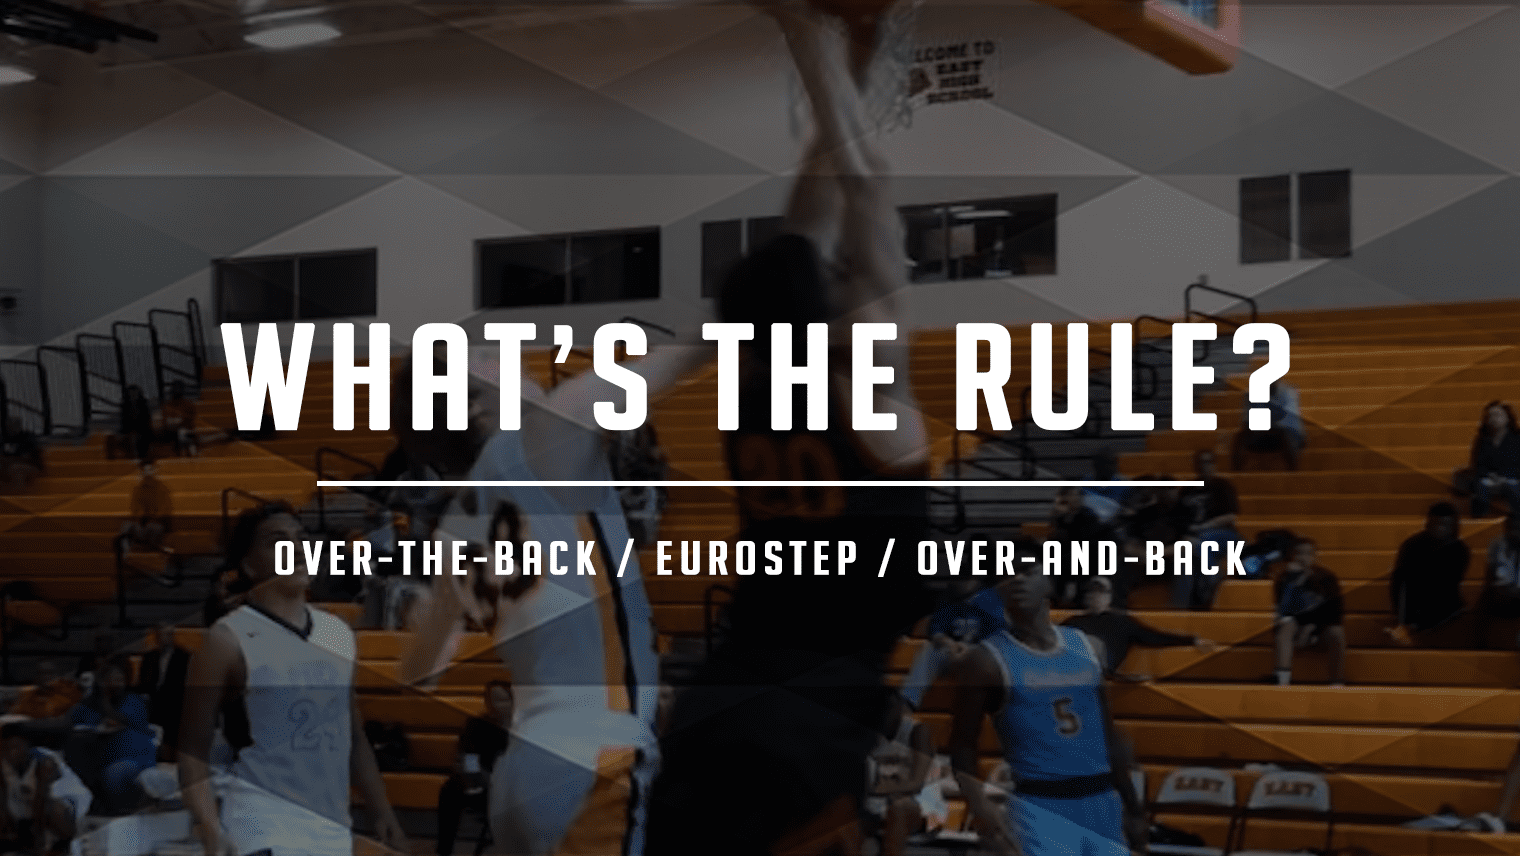 People often mistake the rules of basketball, so here are three common misconceptions using language in the rule book to clear them up.